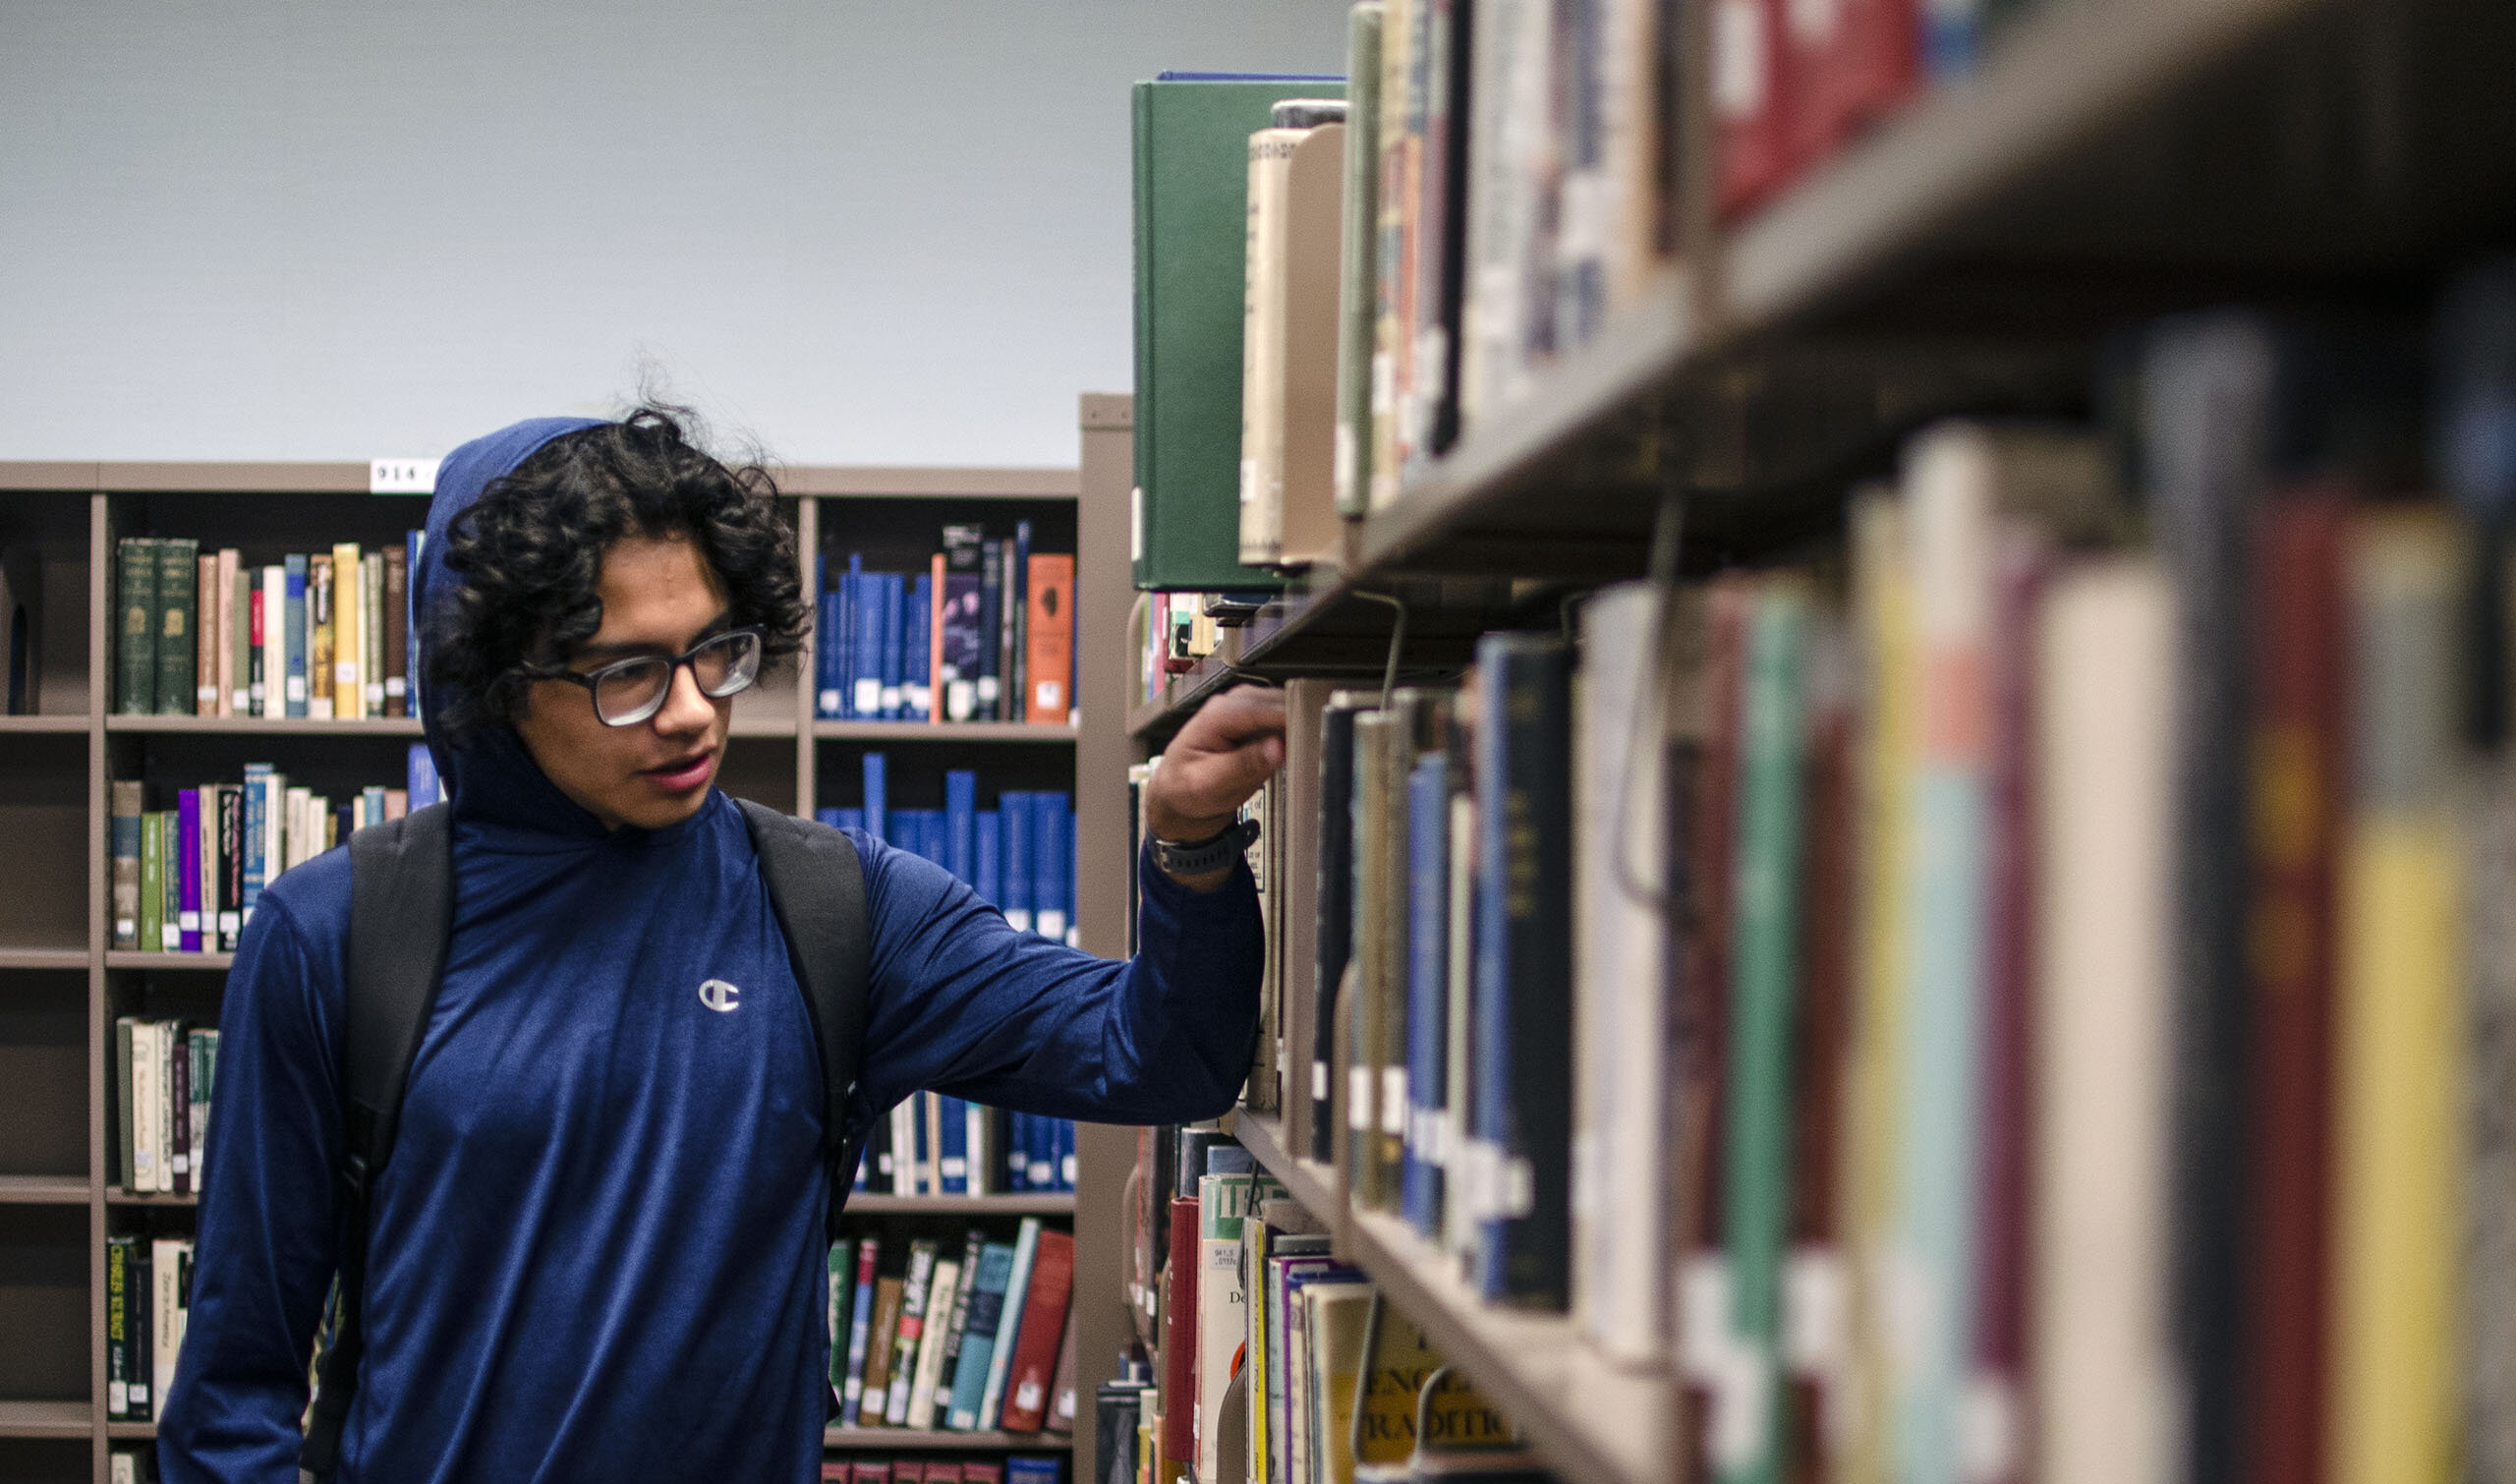 Student browsing books in the library